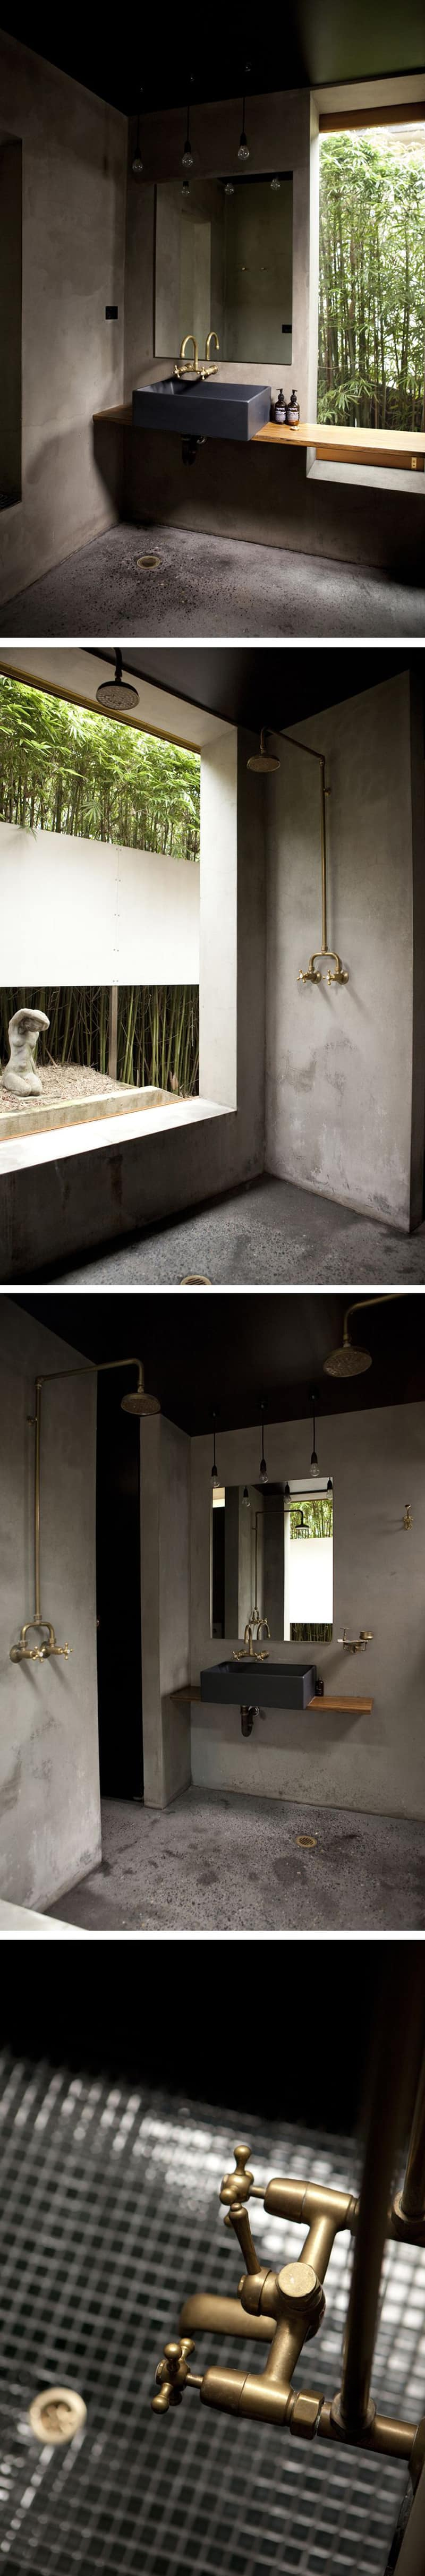 concrete bathroom-designrulz (14)